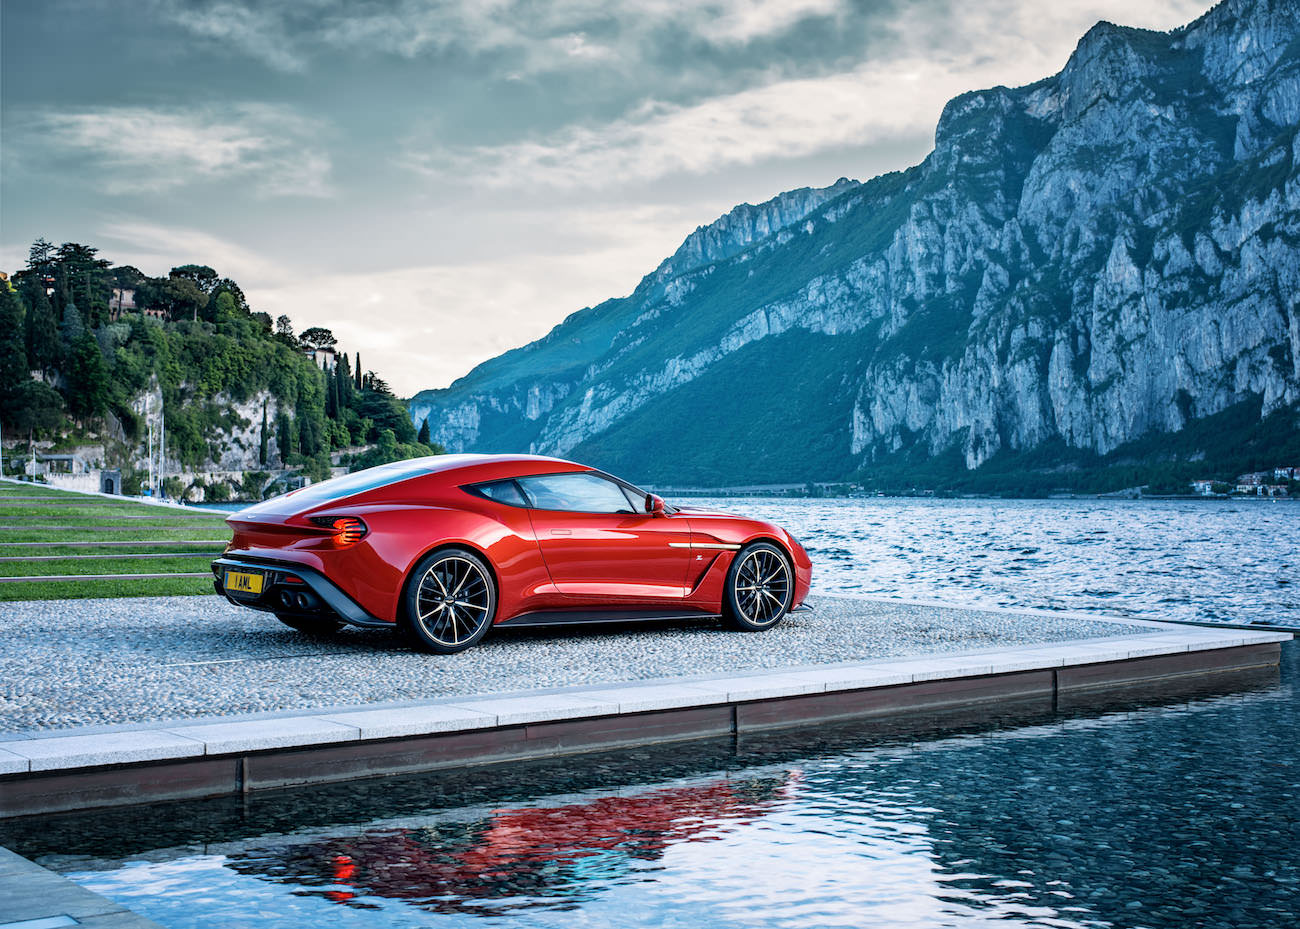 d couvrez la nouvelle aston martin vanquish zagato. Black Bedroom Furniture Sets. Home Design Ideas